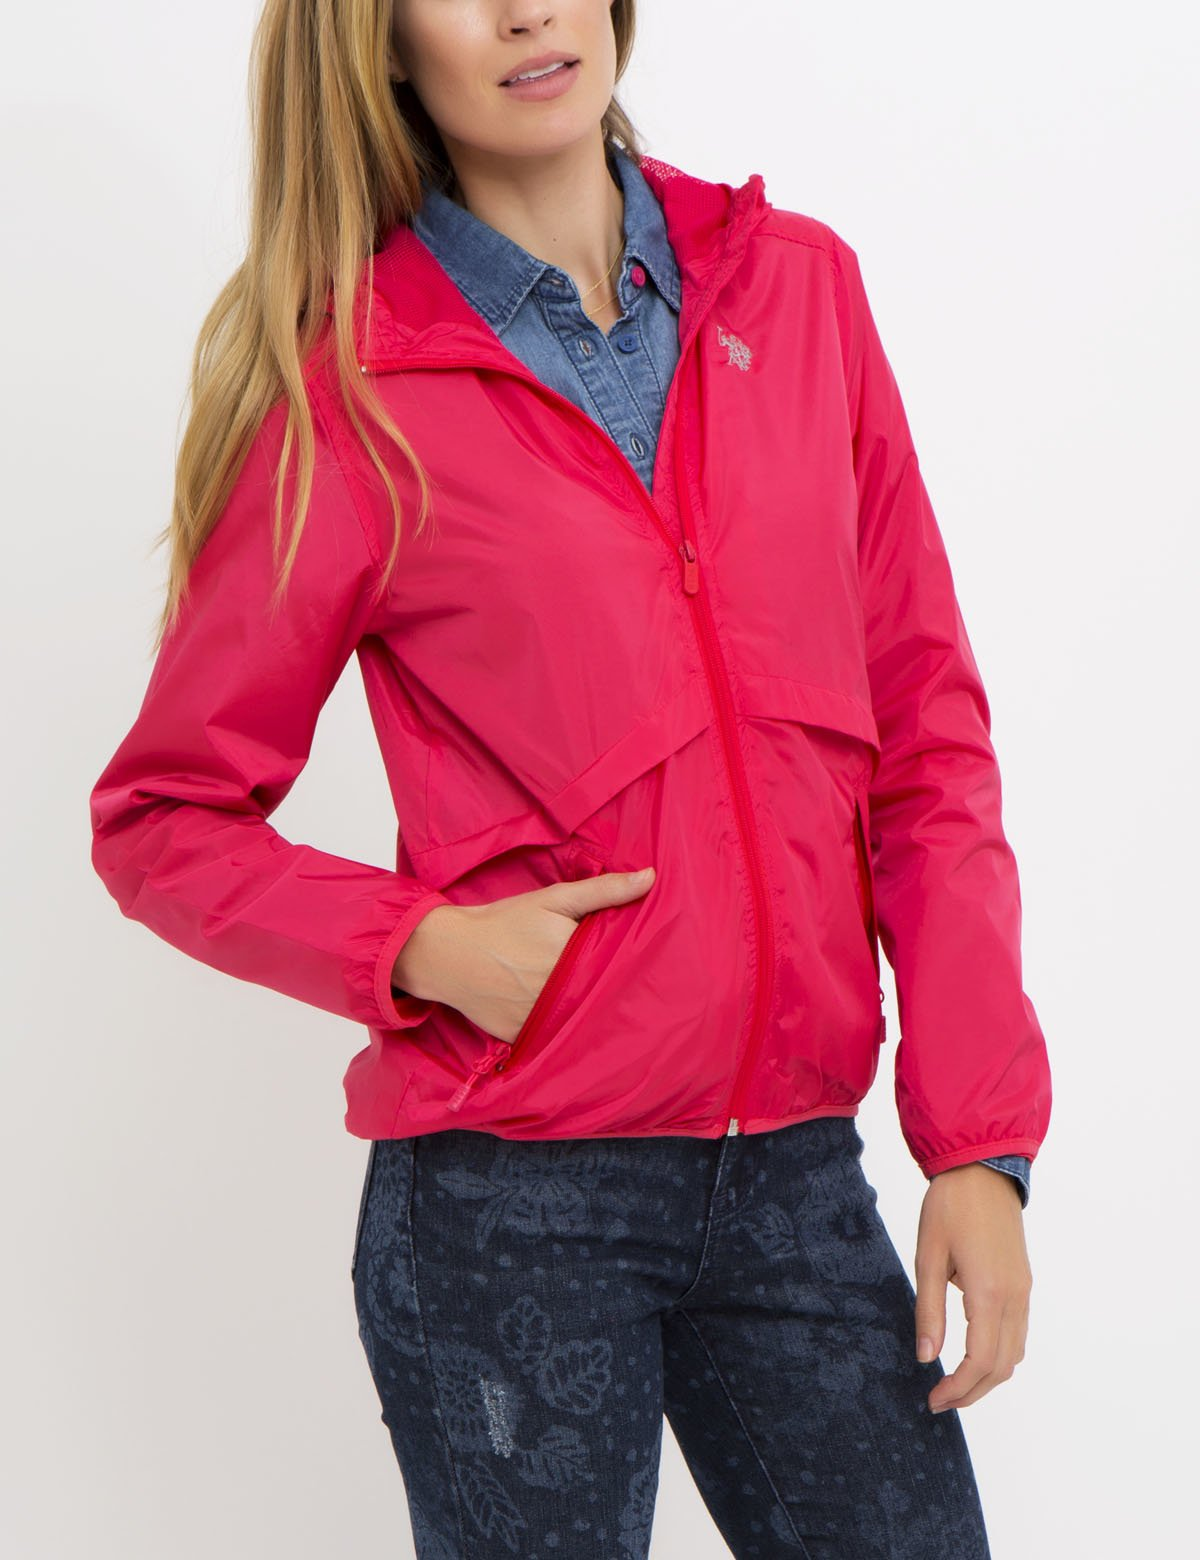 HOODED WINDBREAKER JACKET - U.S. Polo Assn.